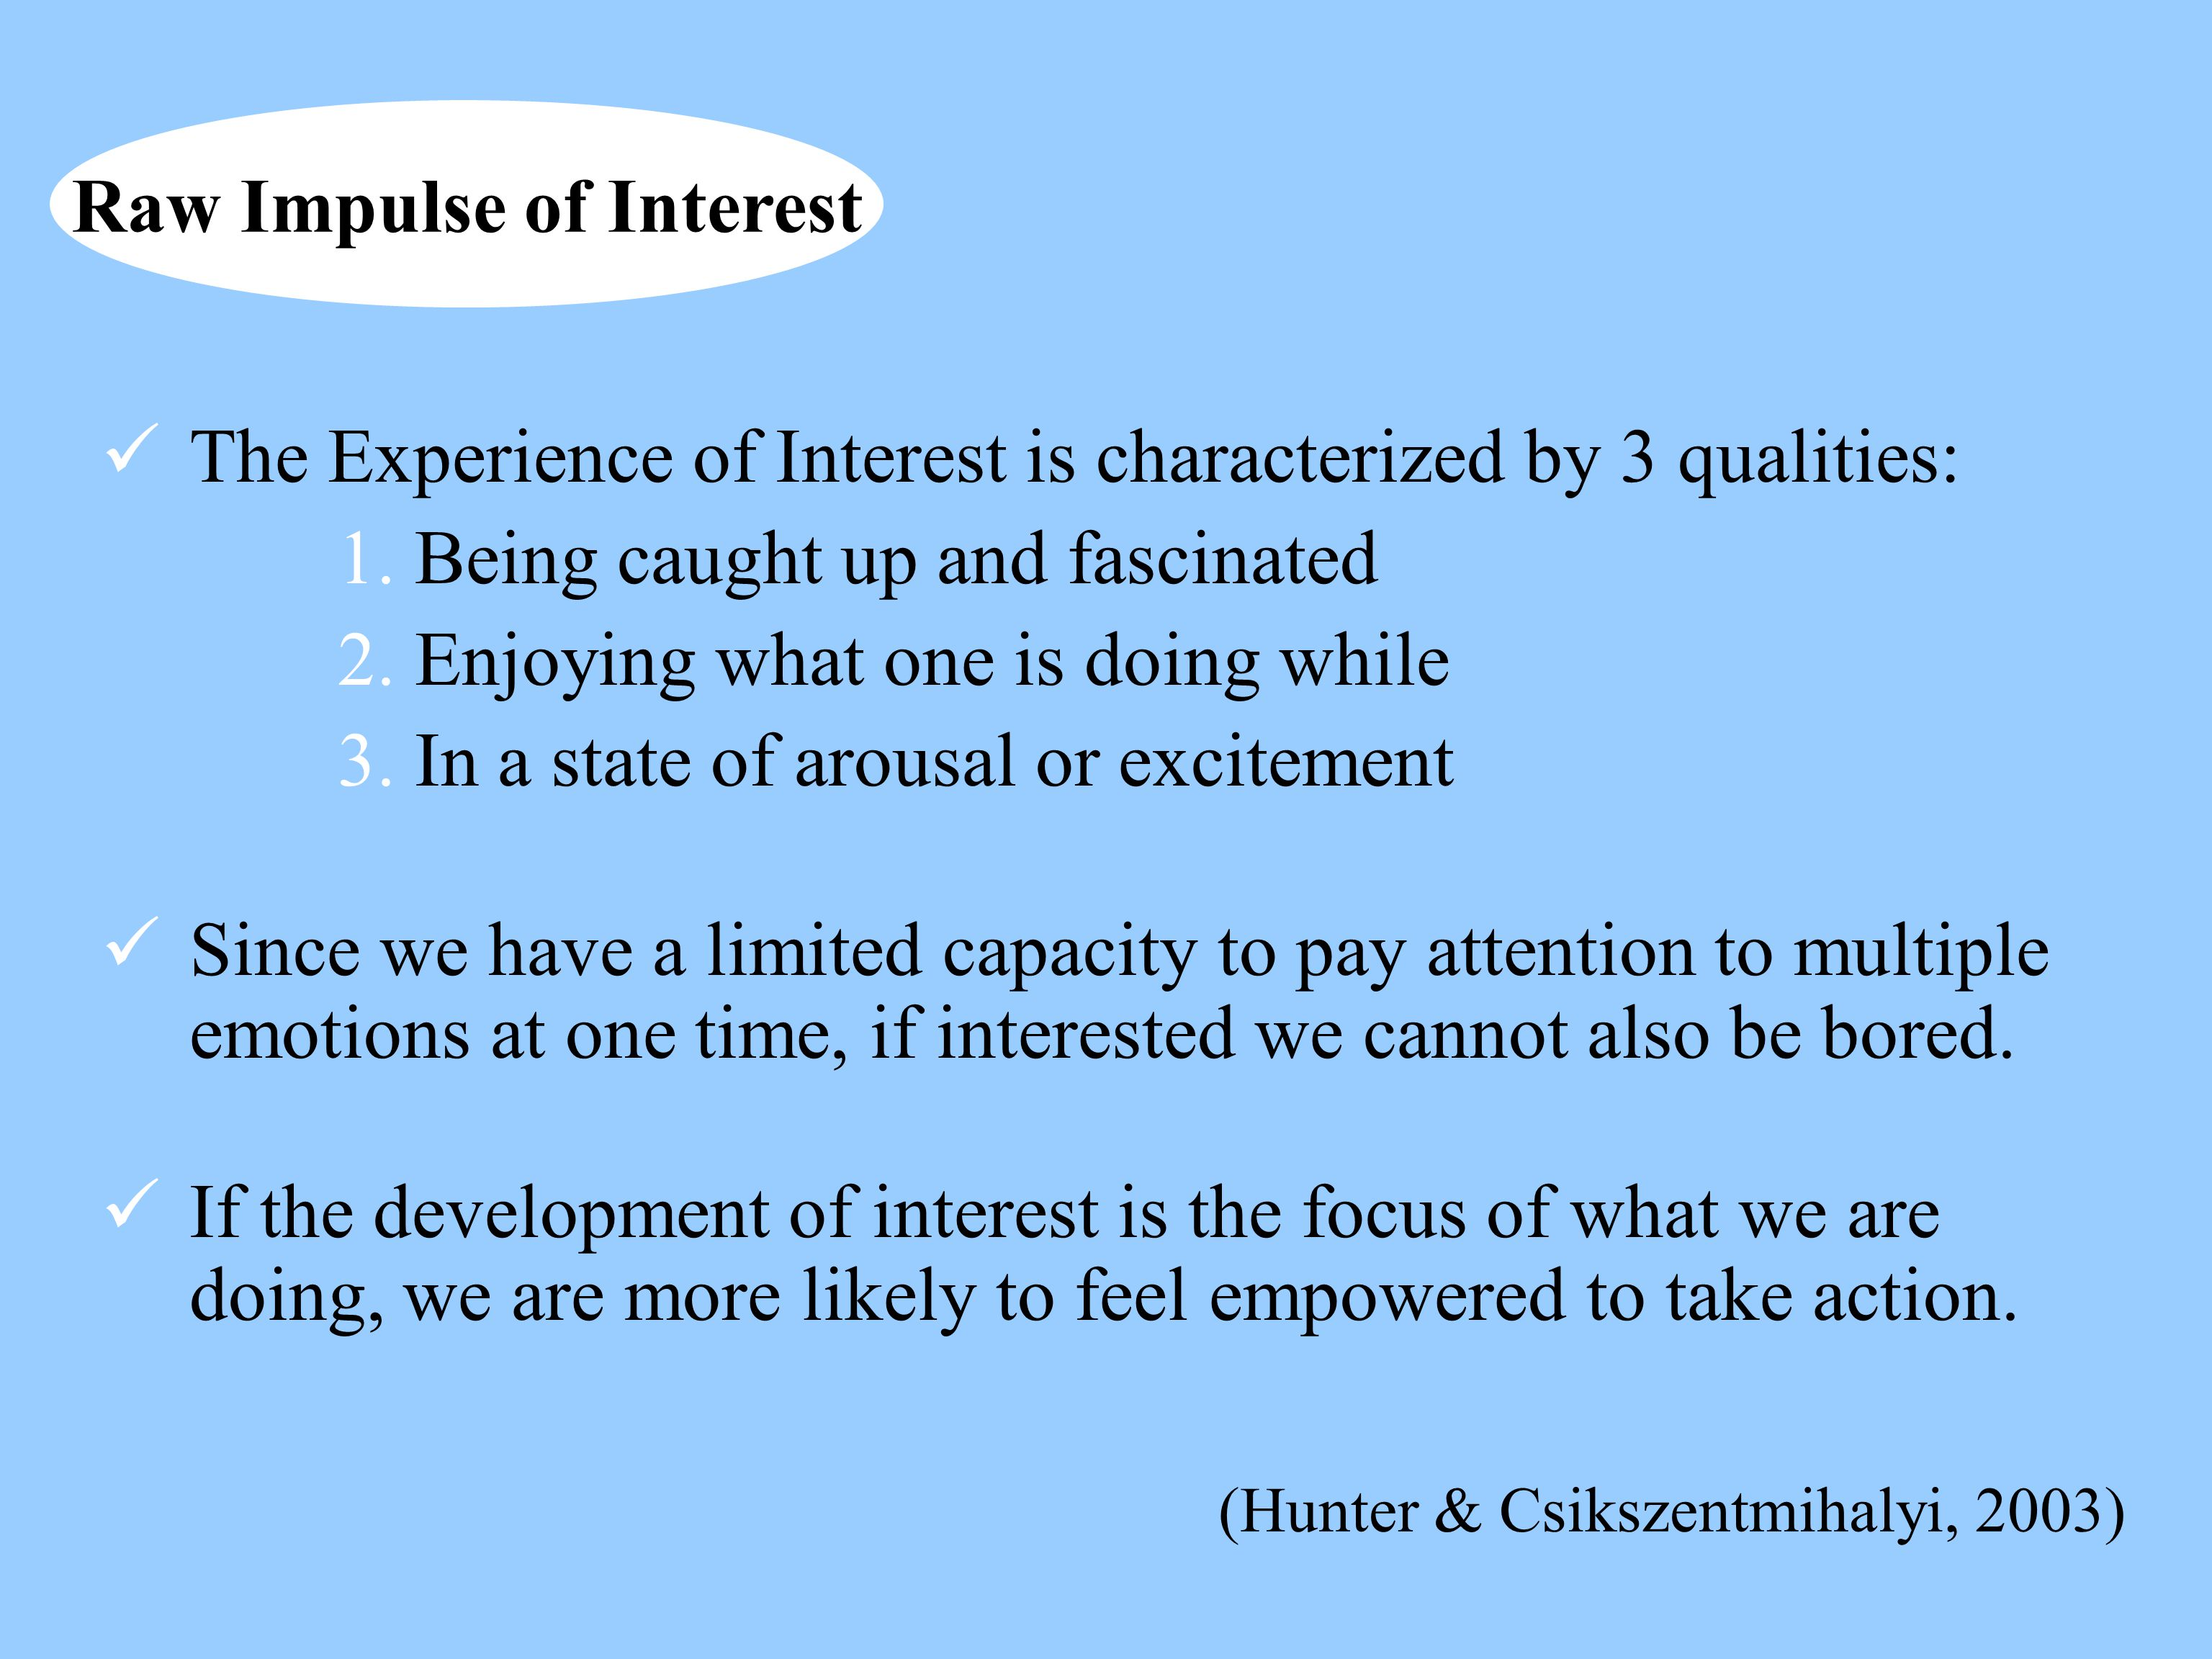 The Experience of Interest is characterized by 3 qualities: 1. Being caught up and fascinated 2. Enjoying what one is doing while 3. In a state of aro